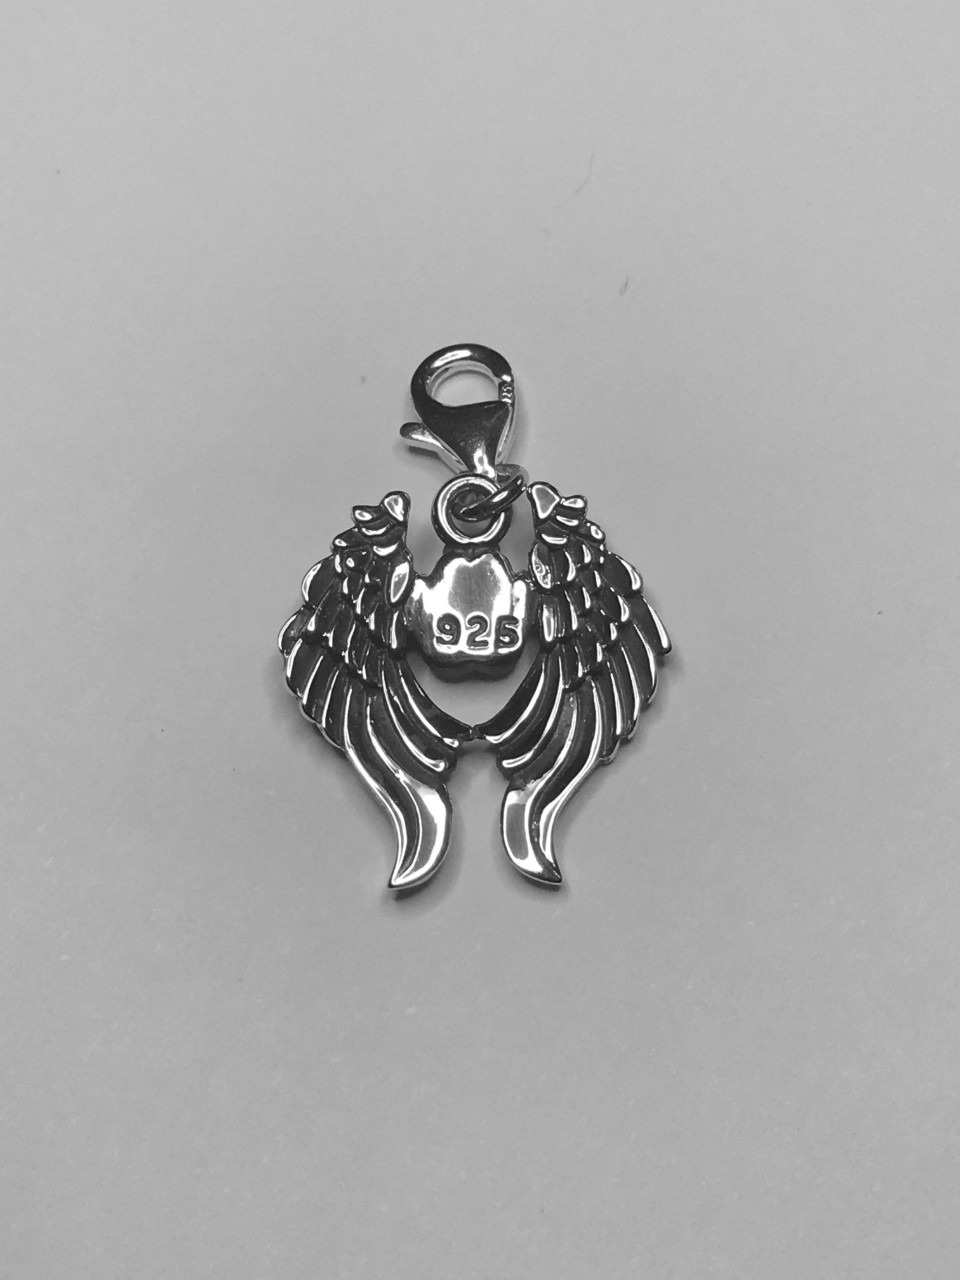 Paws in Heaven charm - oxidized